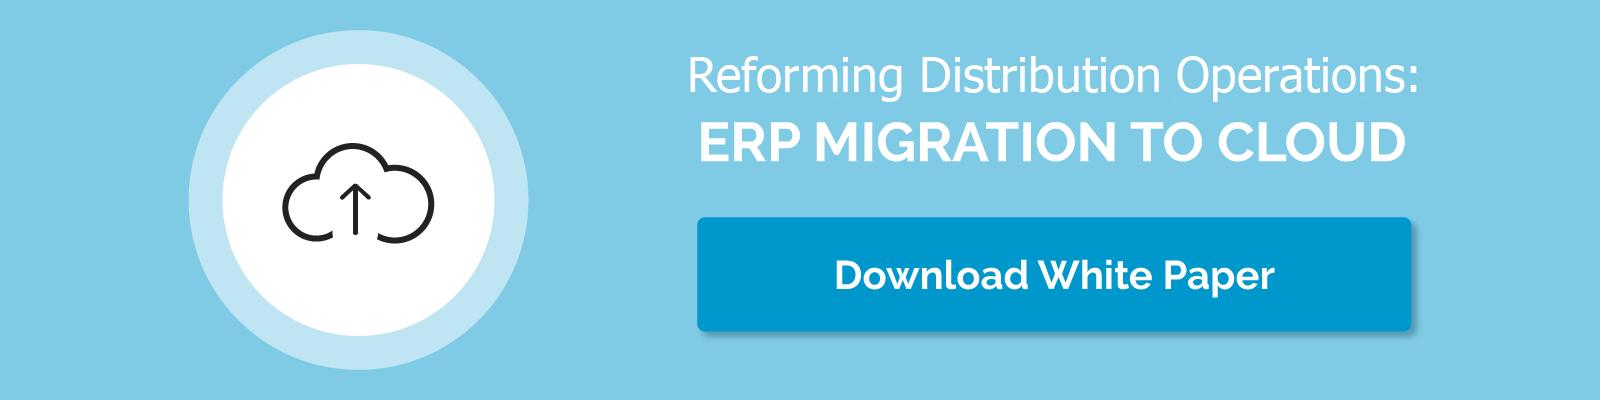 manufacturing erp migration to the cloud